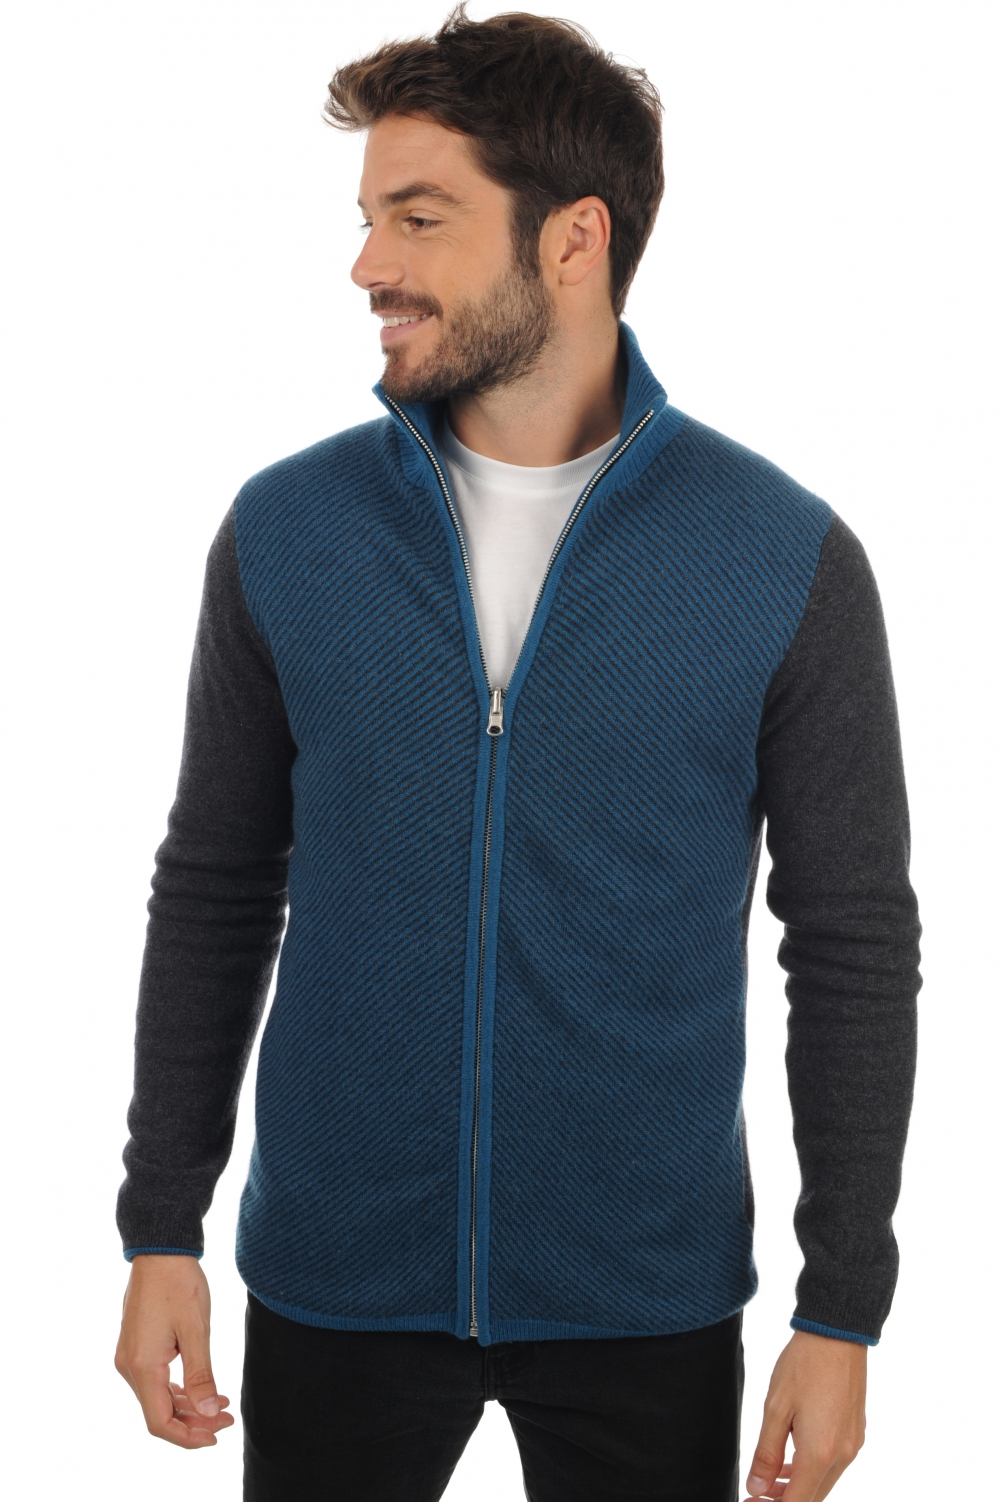 cachemire gilets debardeurs homme joey anthracite chine bleu canard m